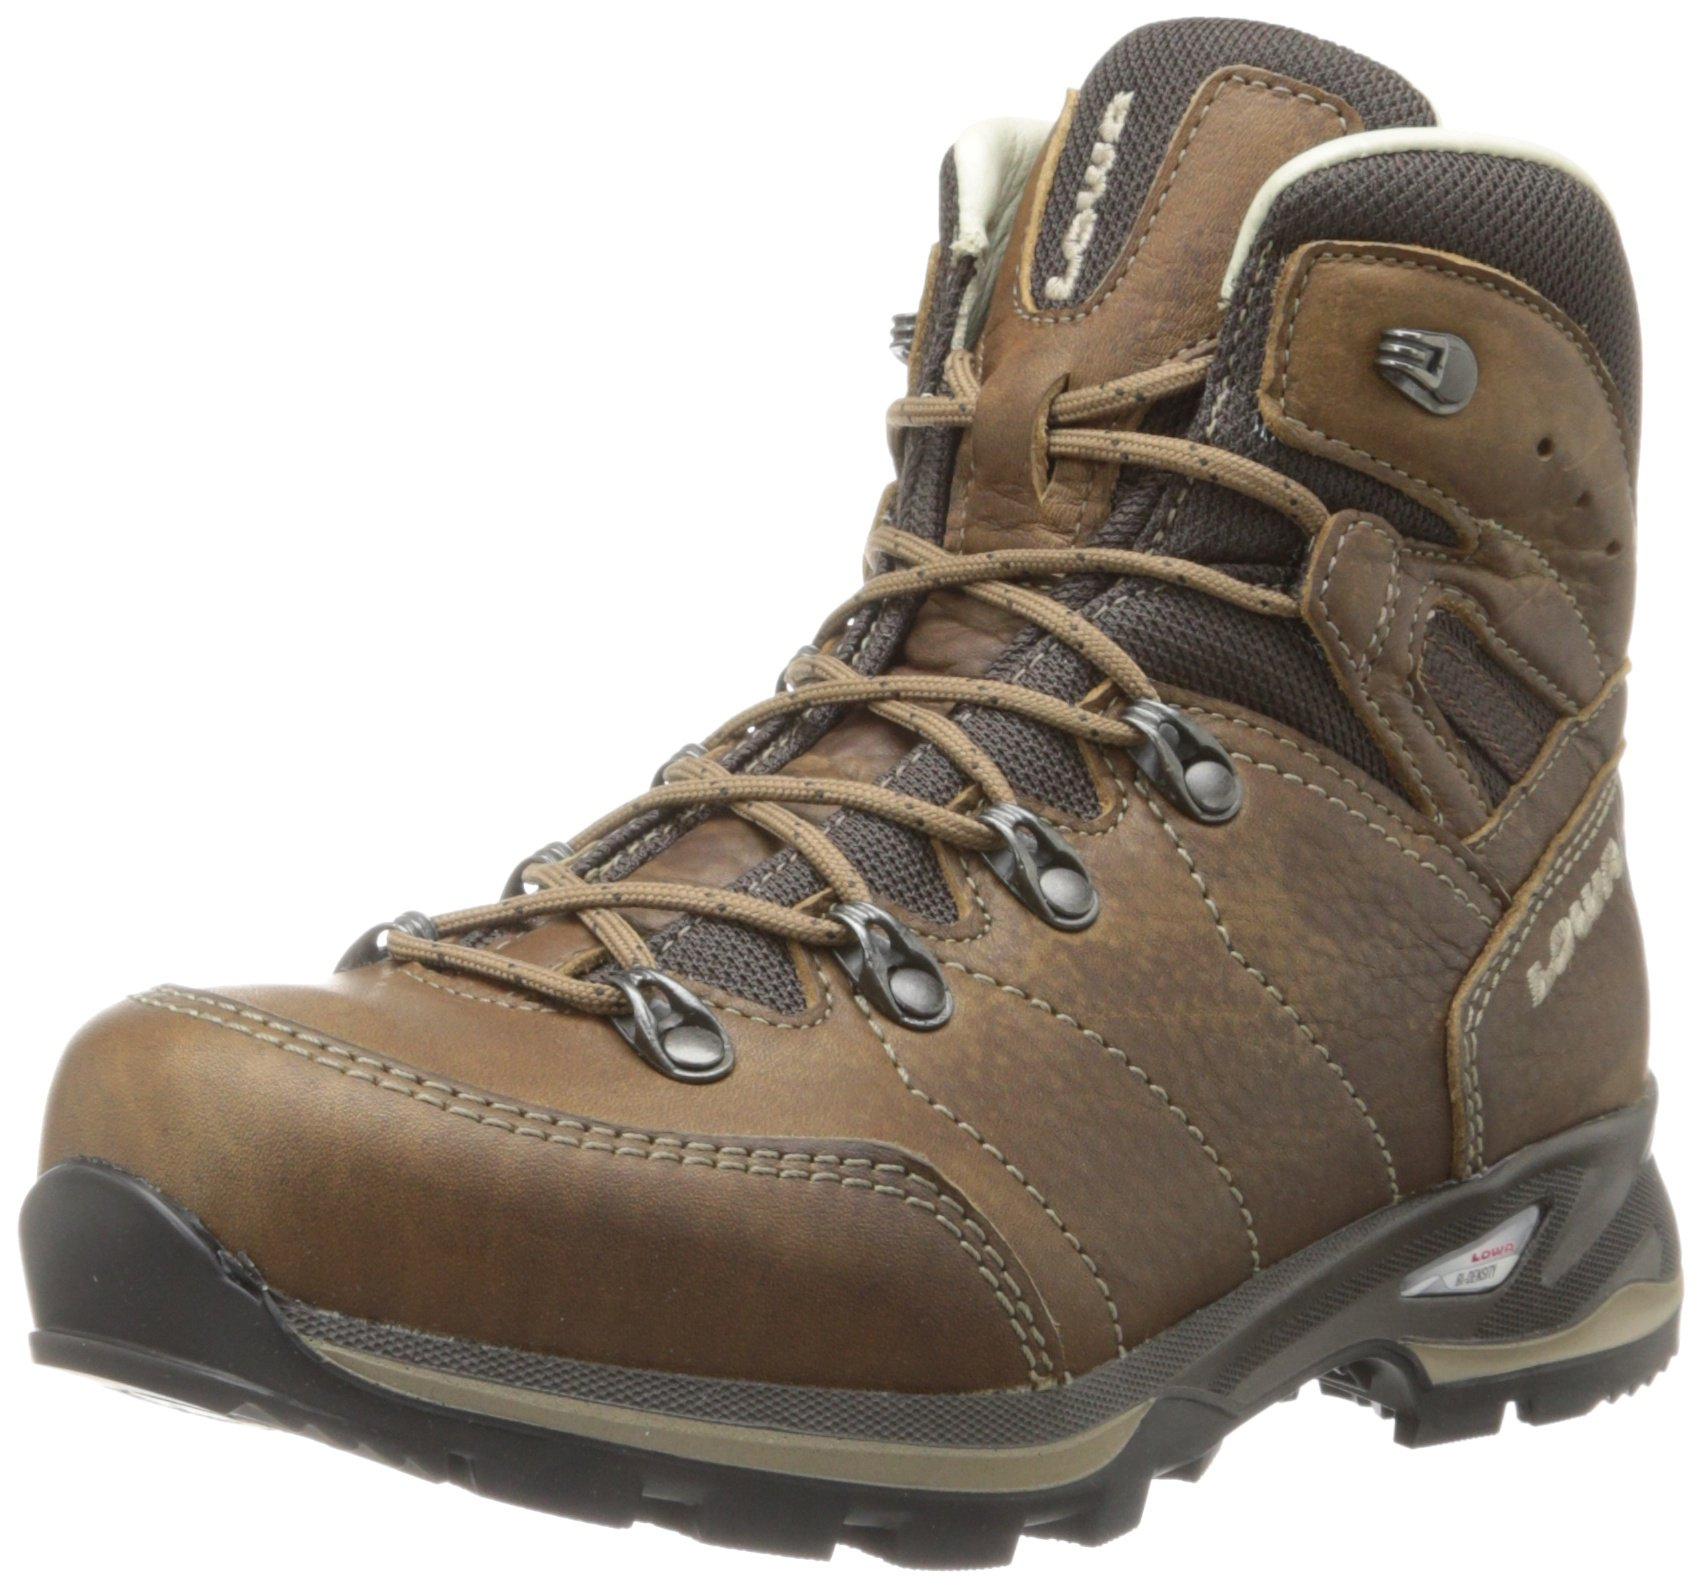 Lowa Women's Hudson Leather Lined Mid Hiking Boot,Taupe,7.5 M US